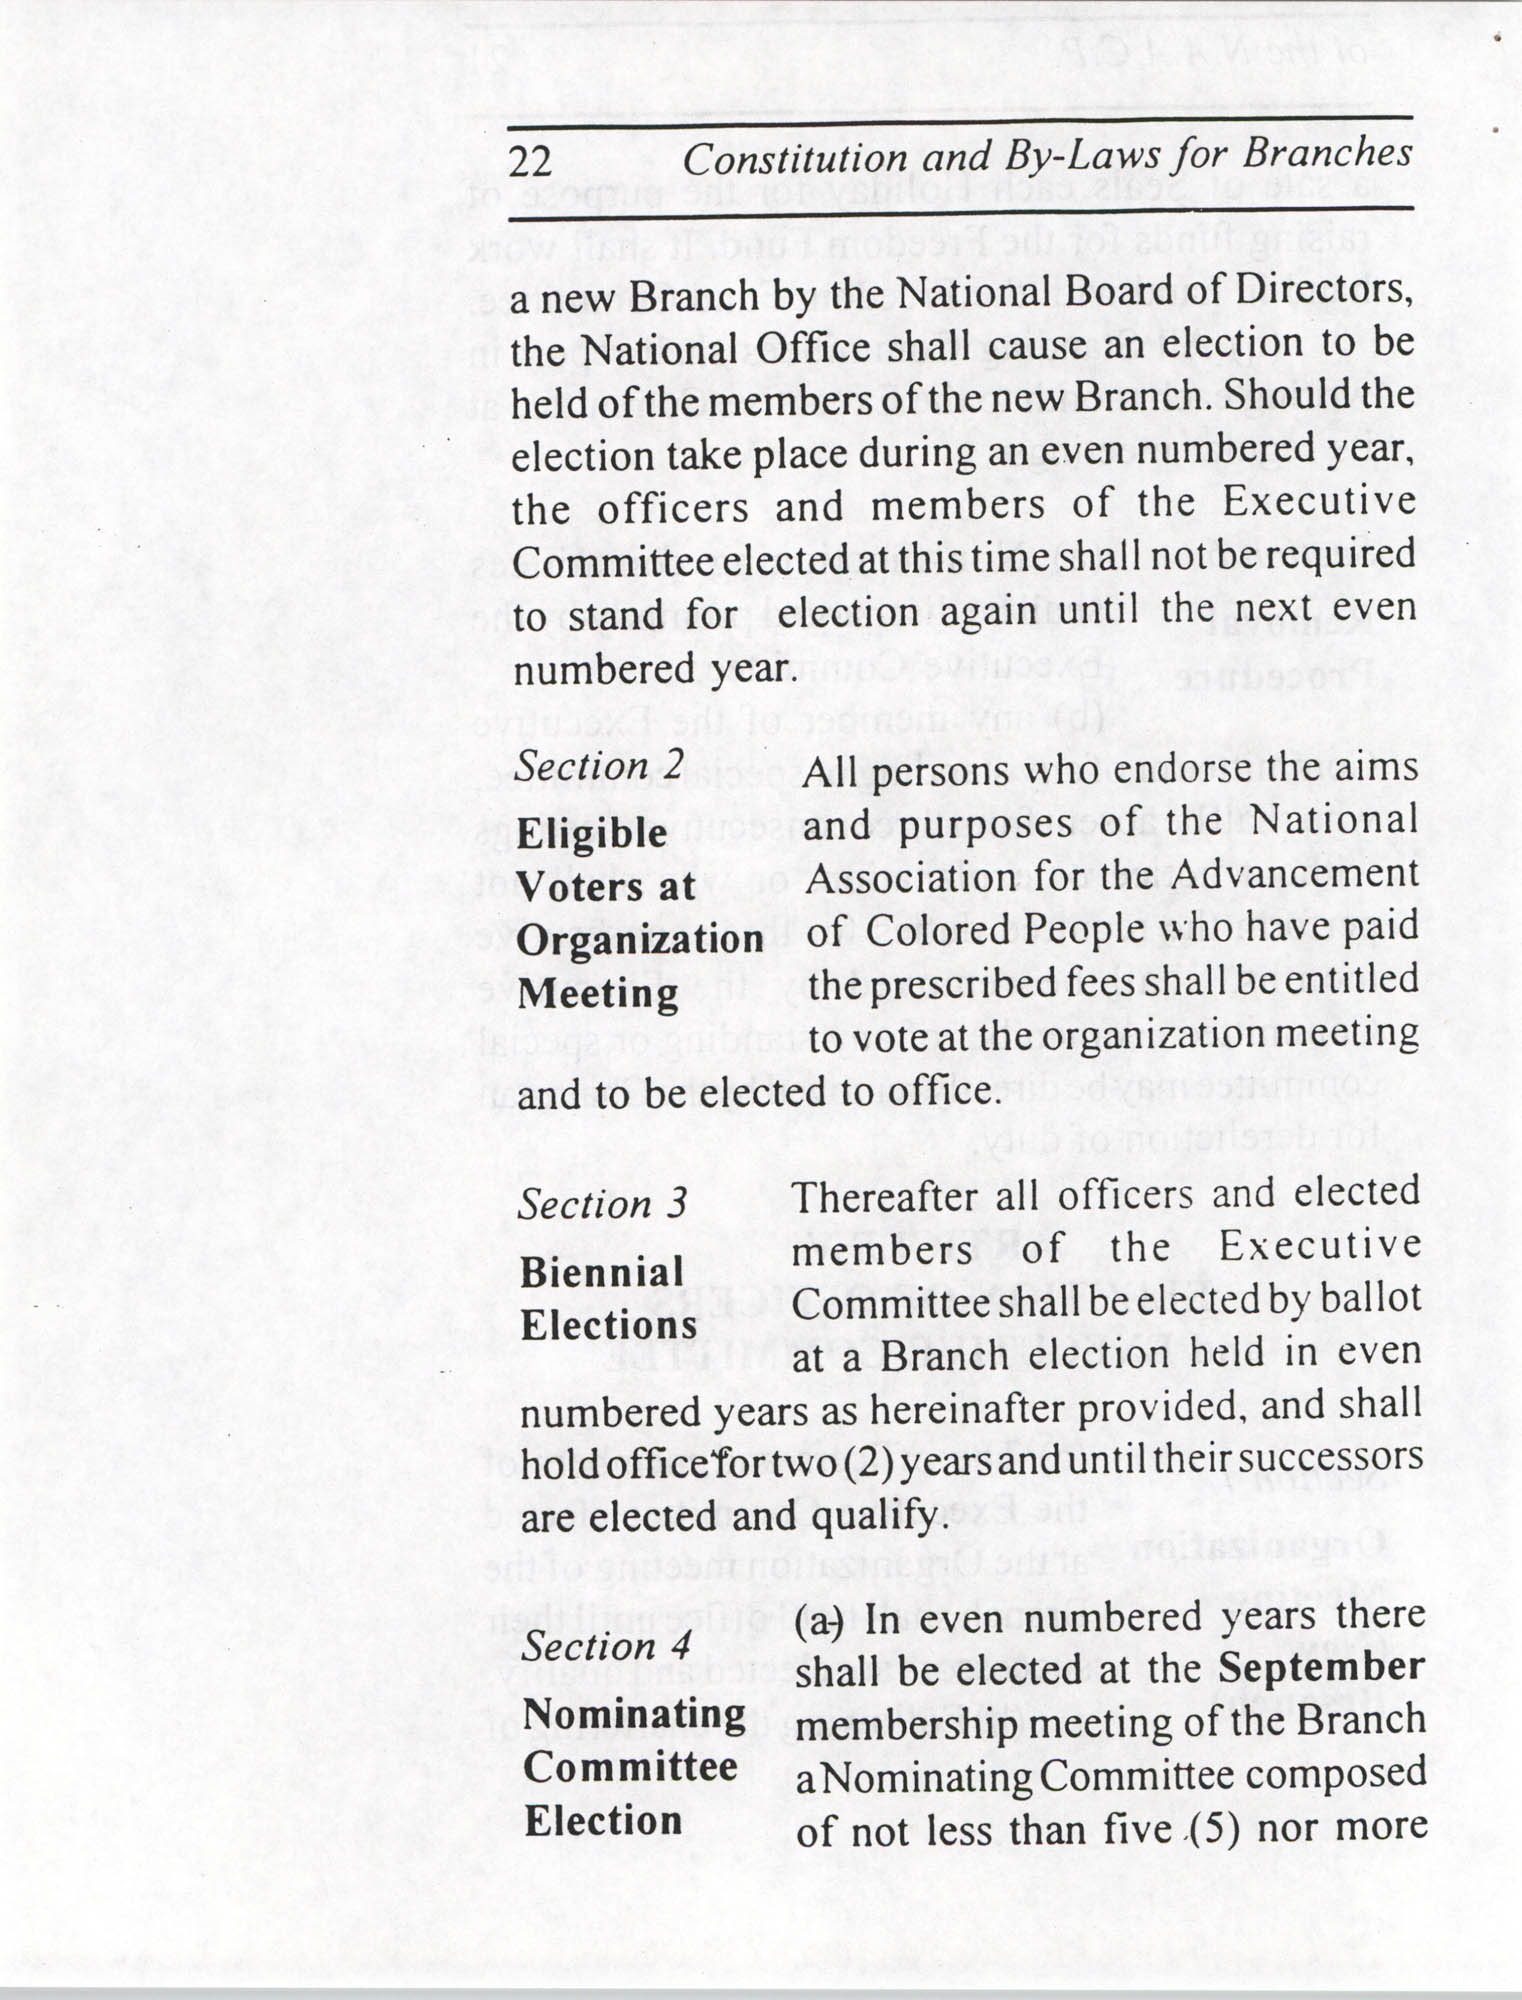 Constitution and By-Laws for Branches of the NAACP, July 1994, Page 22